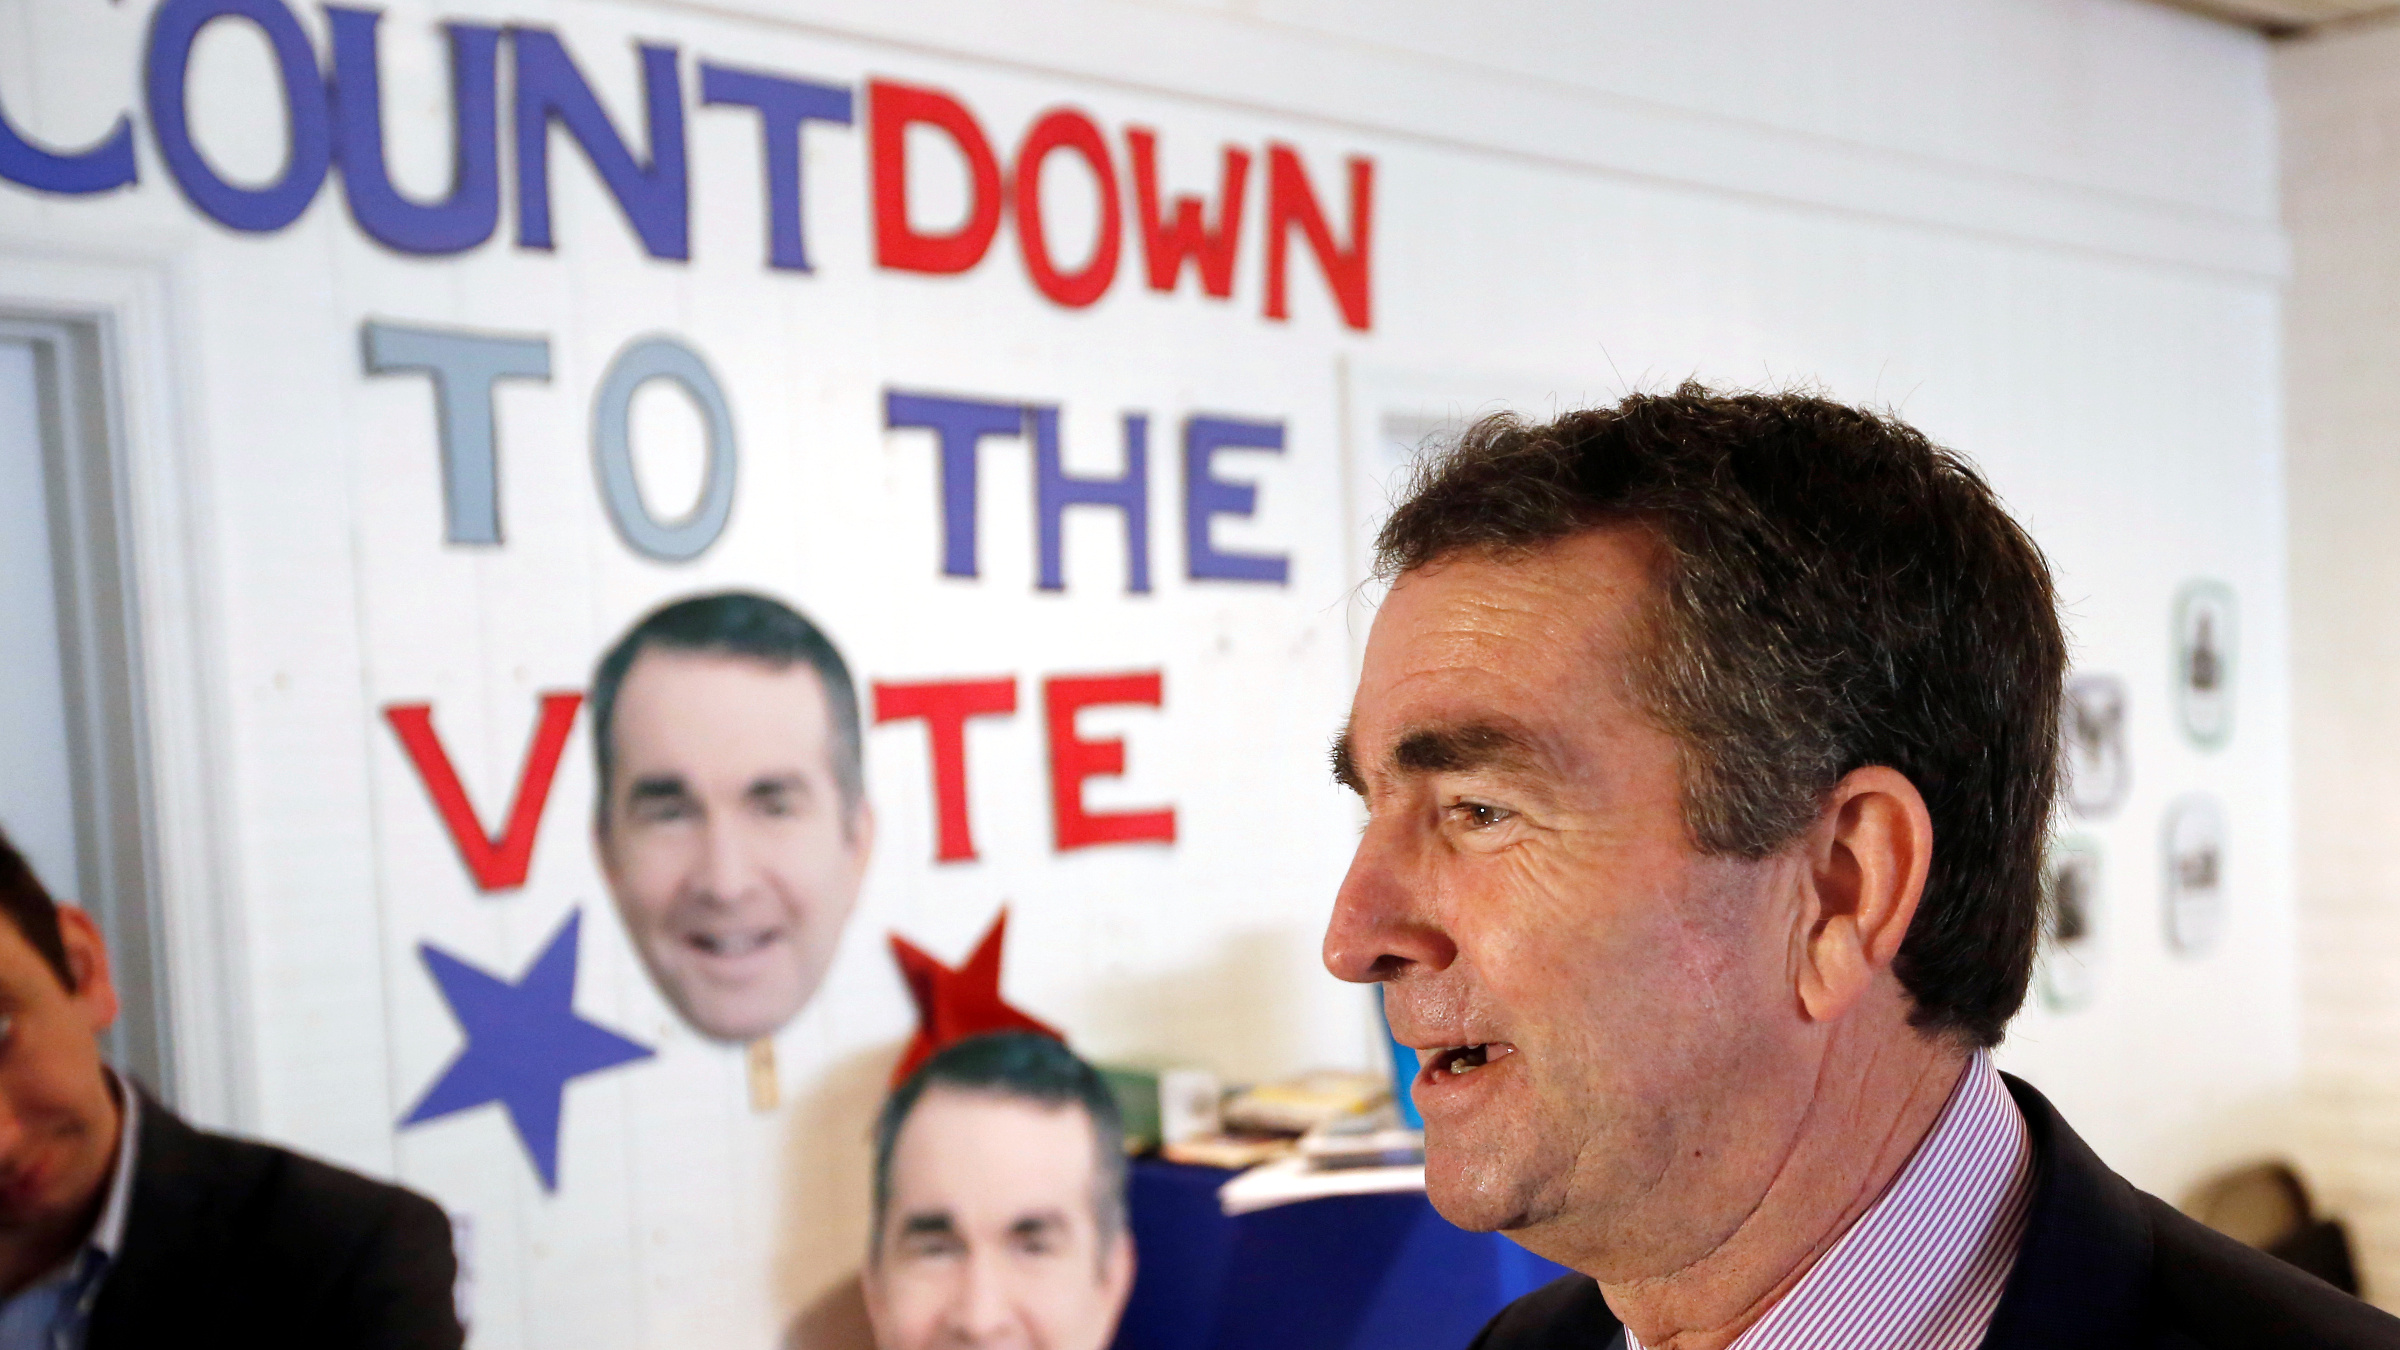 Virginia Lieutenant Governor Ralph Northam, who is campaigning to be elected as the state's governor, greets supporters during a rally in Richmond, Virginia, U.S. November 6, 2017.